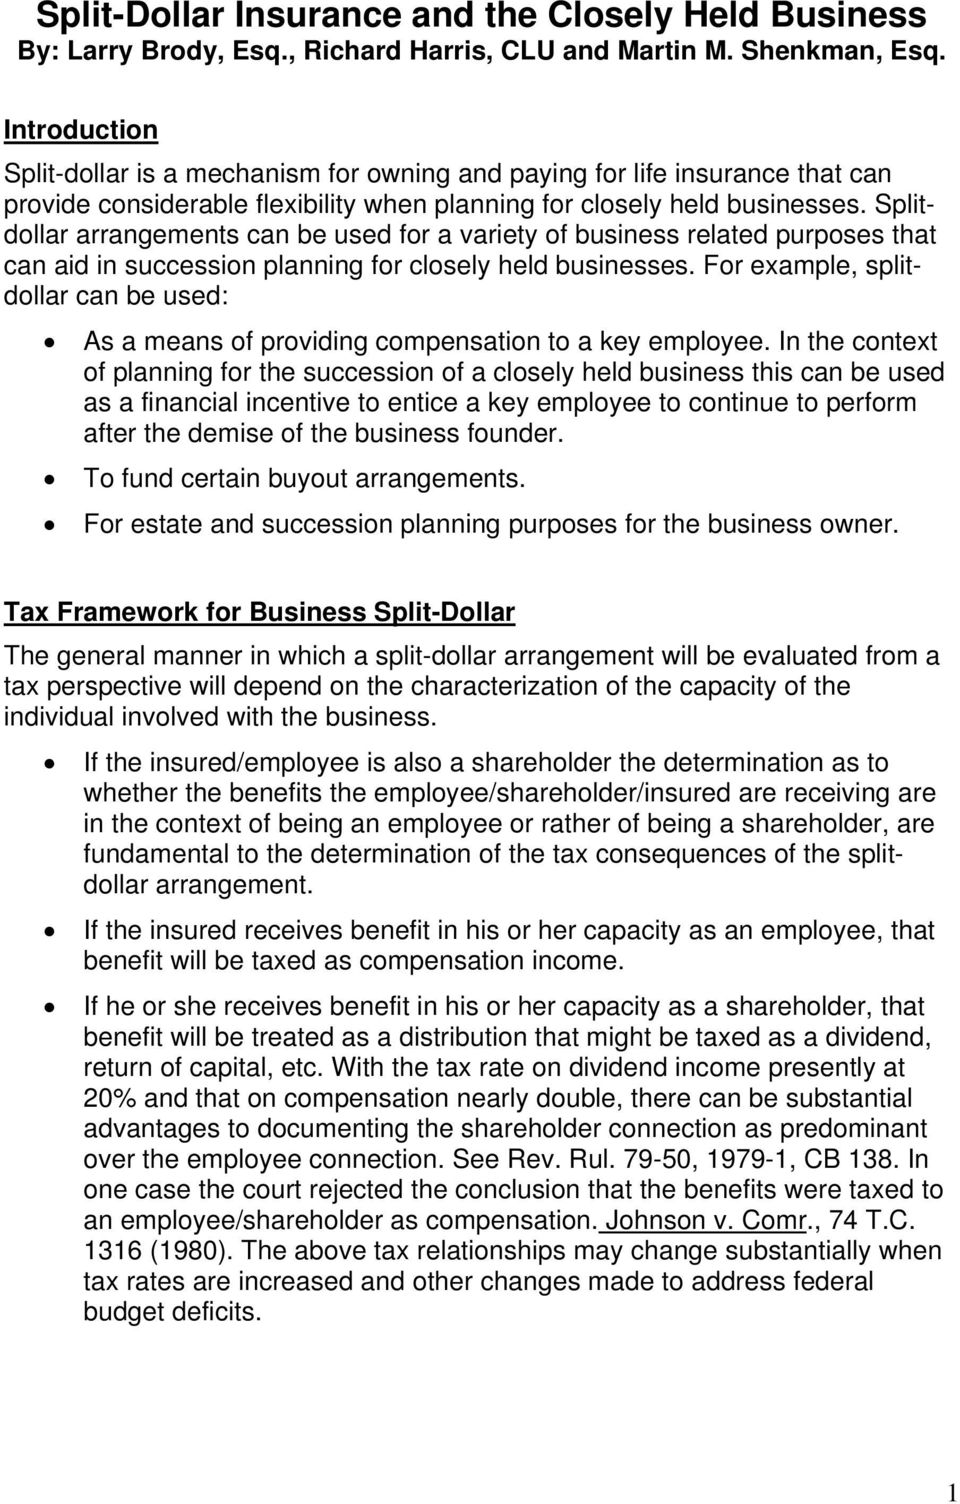 Splitdollar arrangements can be used for a variety of business related purposes that can aid in succession planning for closely held businesses.